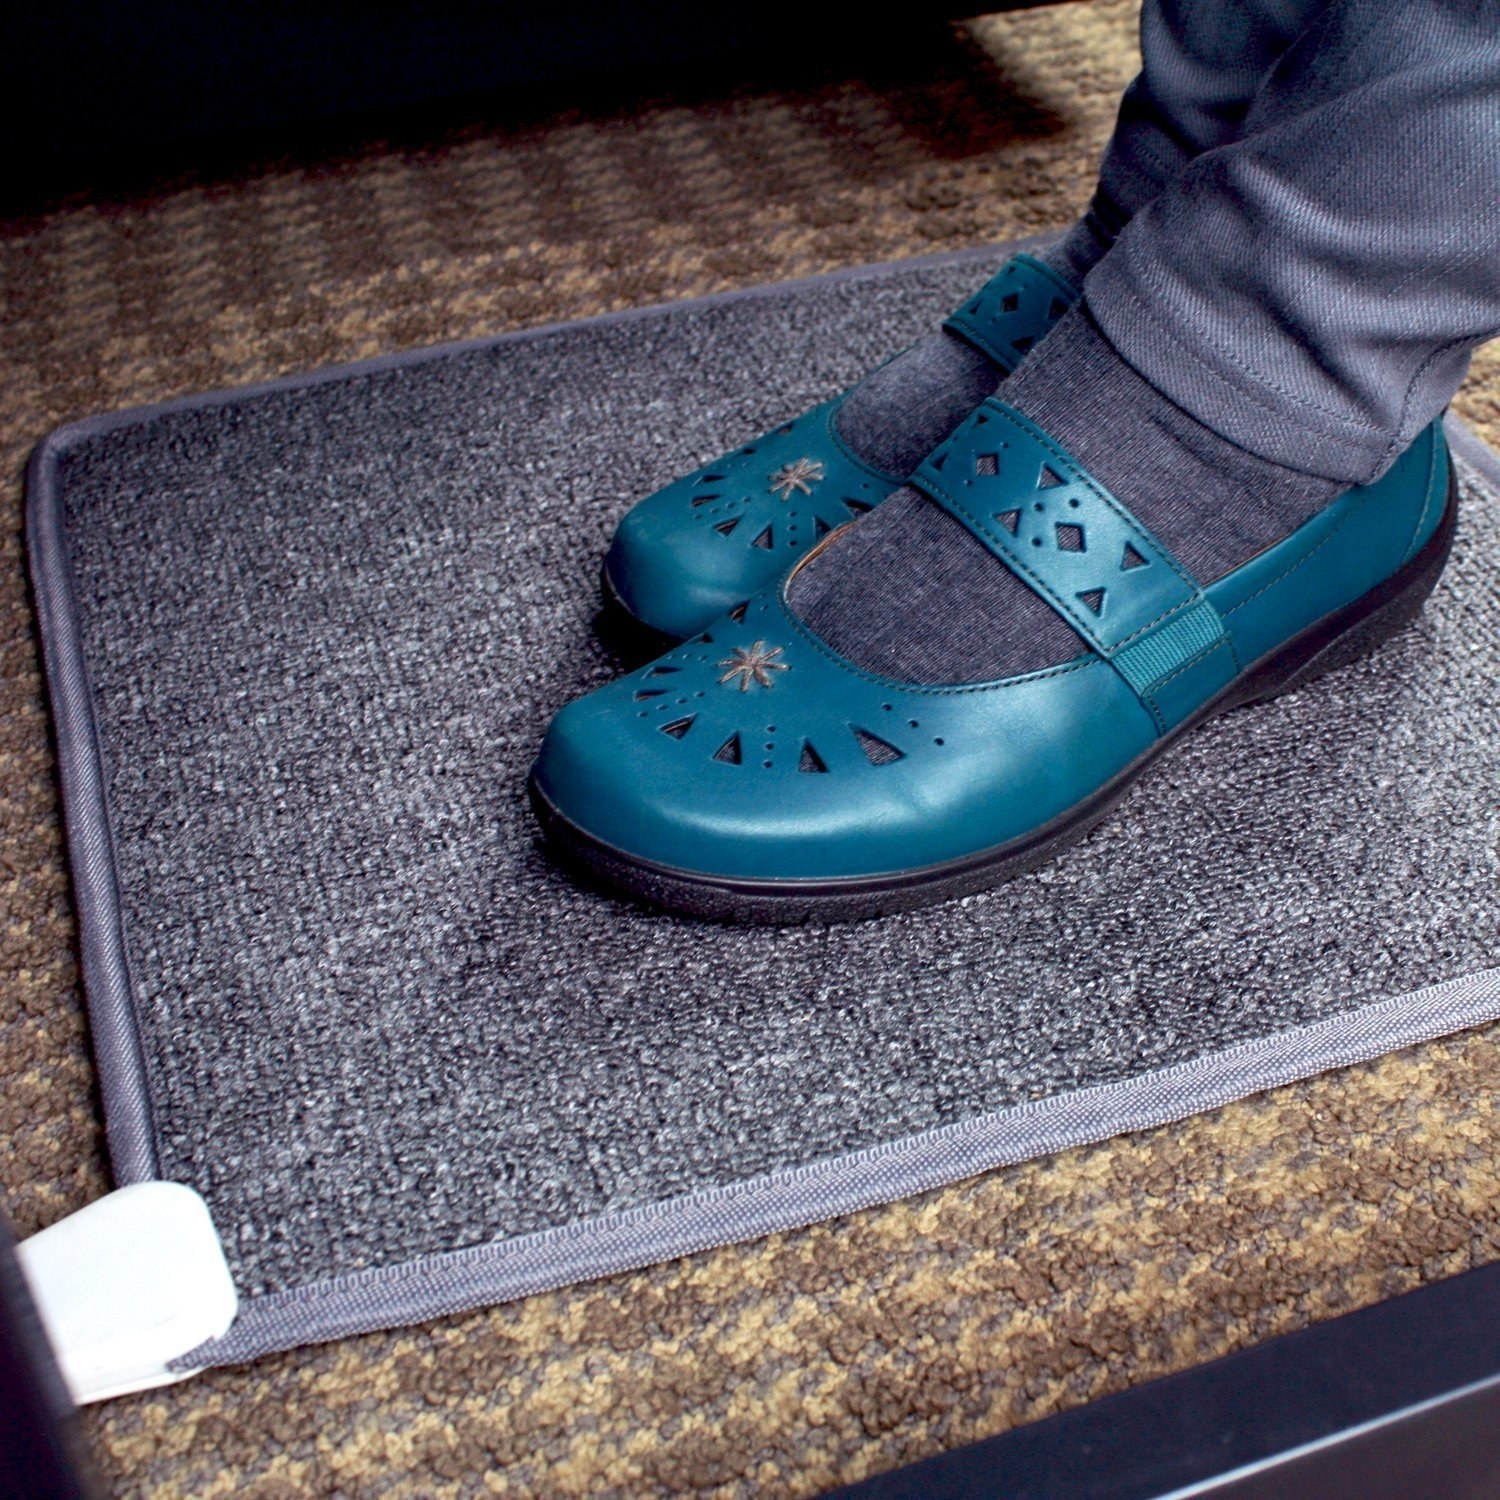 16 things that 39 ll keep your feet warm all winter long for Hardwood floors hurt feet